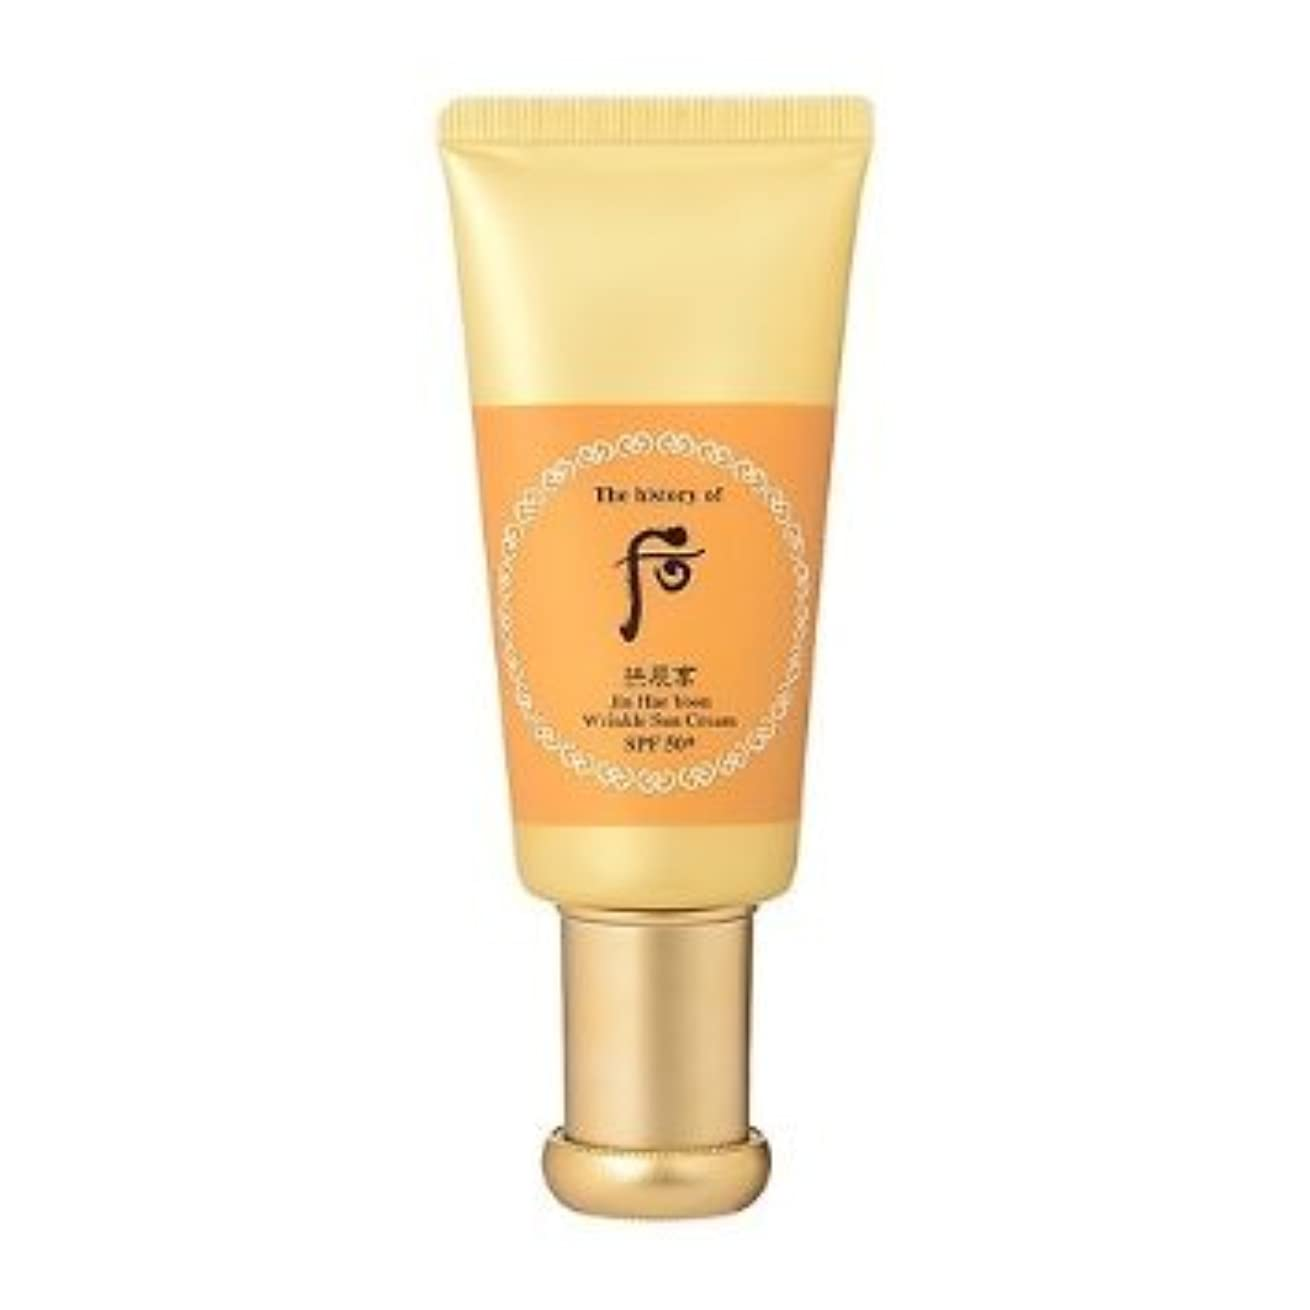 モンキーシステム合わせてThe History of Whoo Gongjinhyang Jin Hae Yoon Wrinkle Sun Cream(spf5-+ Pa+++) 50ml(SPF50+, PA+++) 15g x 2ea[行輸入品]